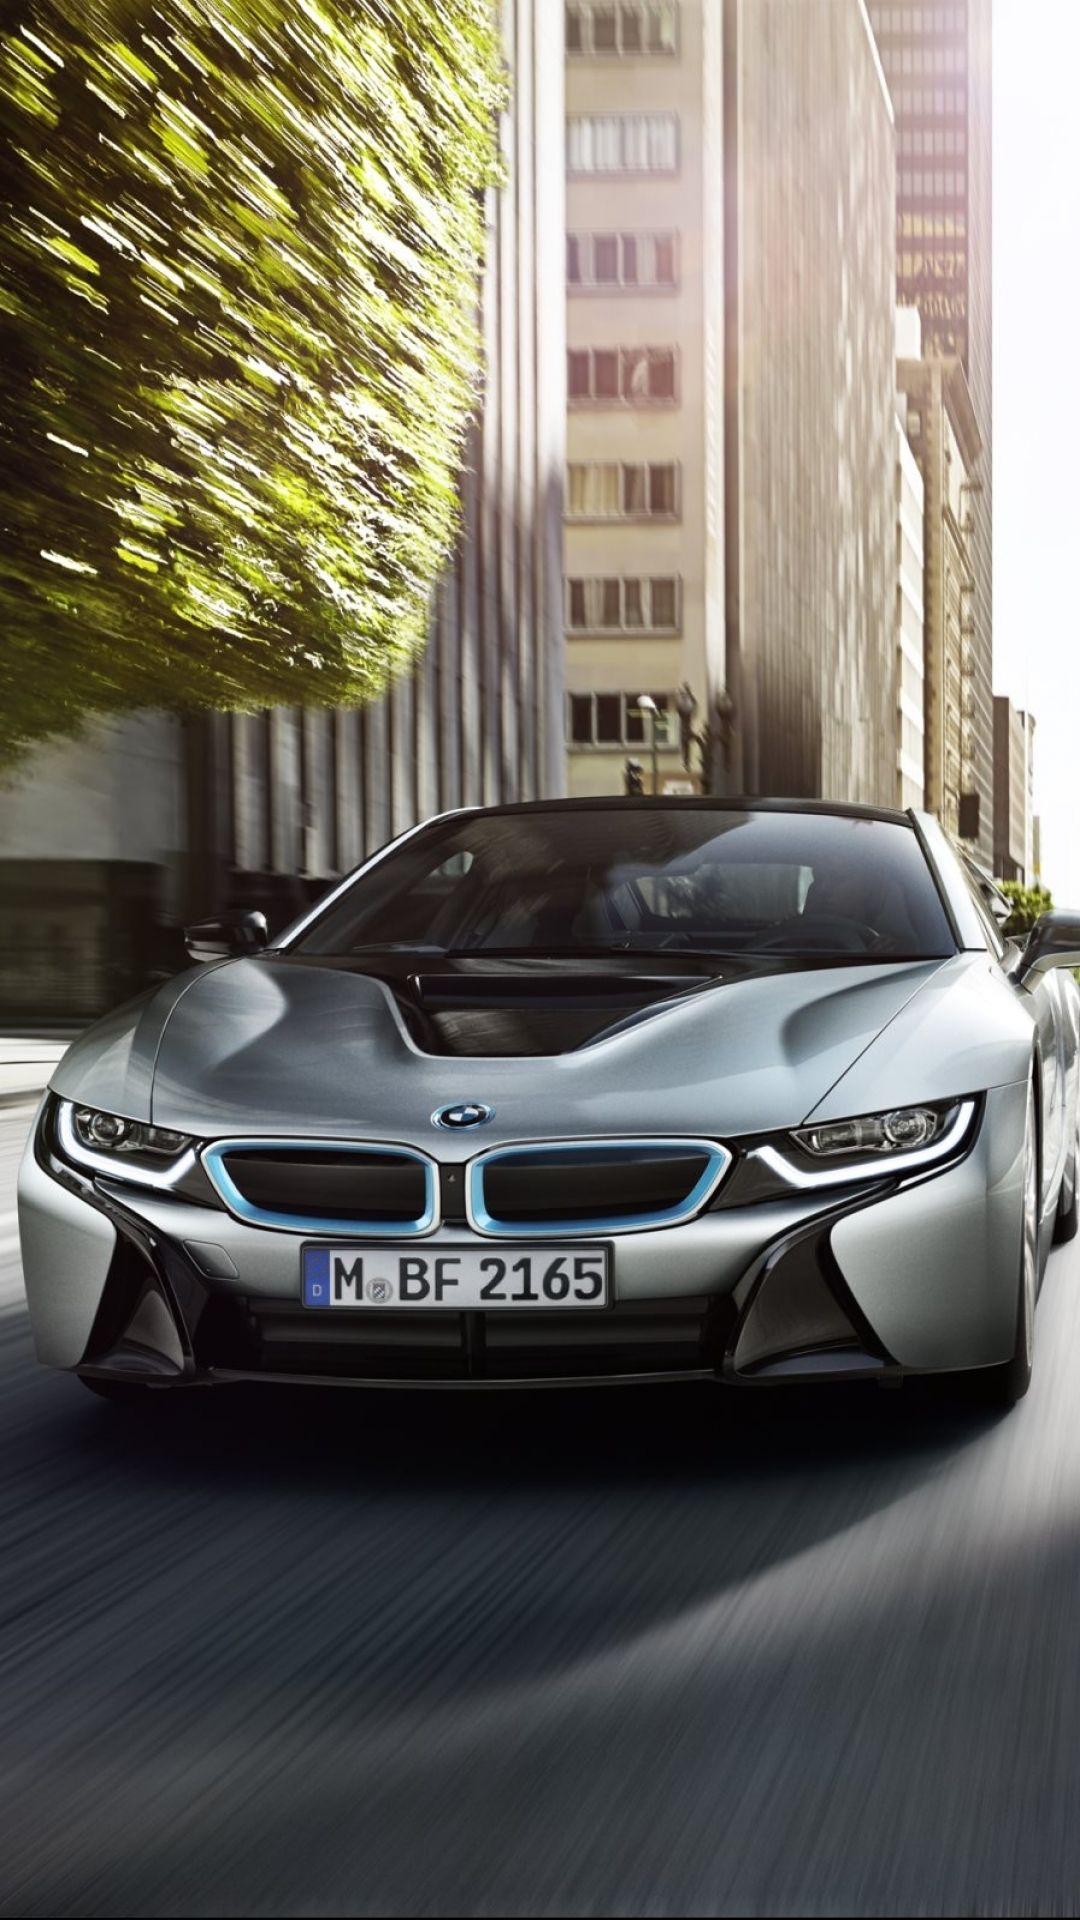 Bmw I8 Hd Wallpapers For Mobile Wallpaper Images Bmw I8 Bmw I8 Wallpapers Bmw